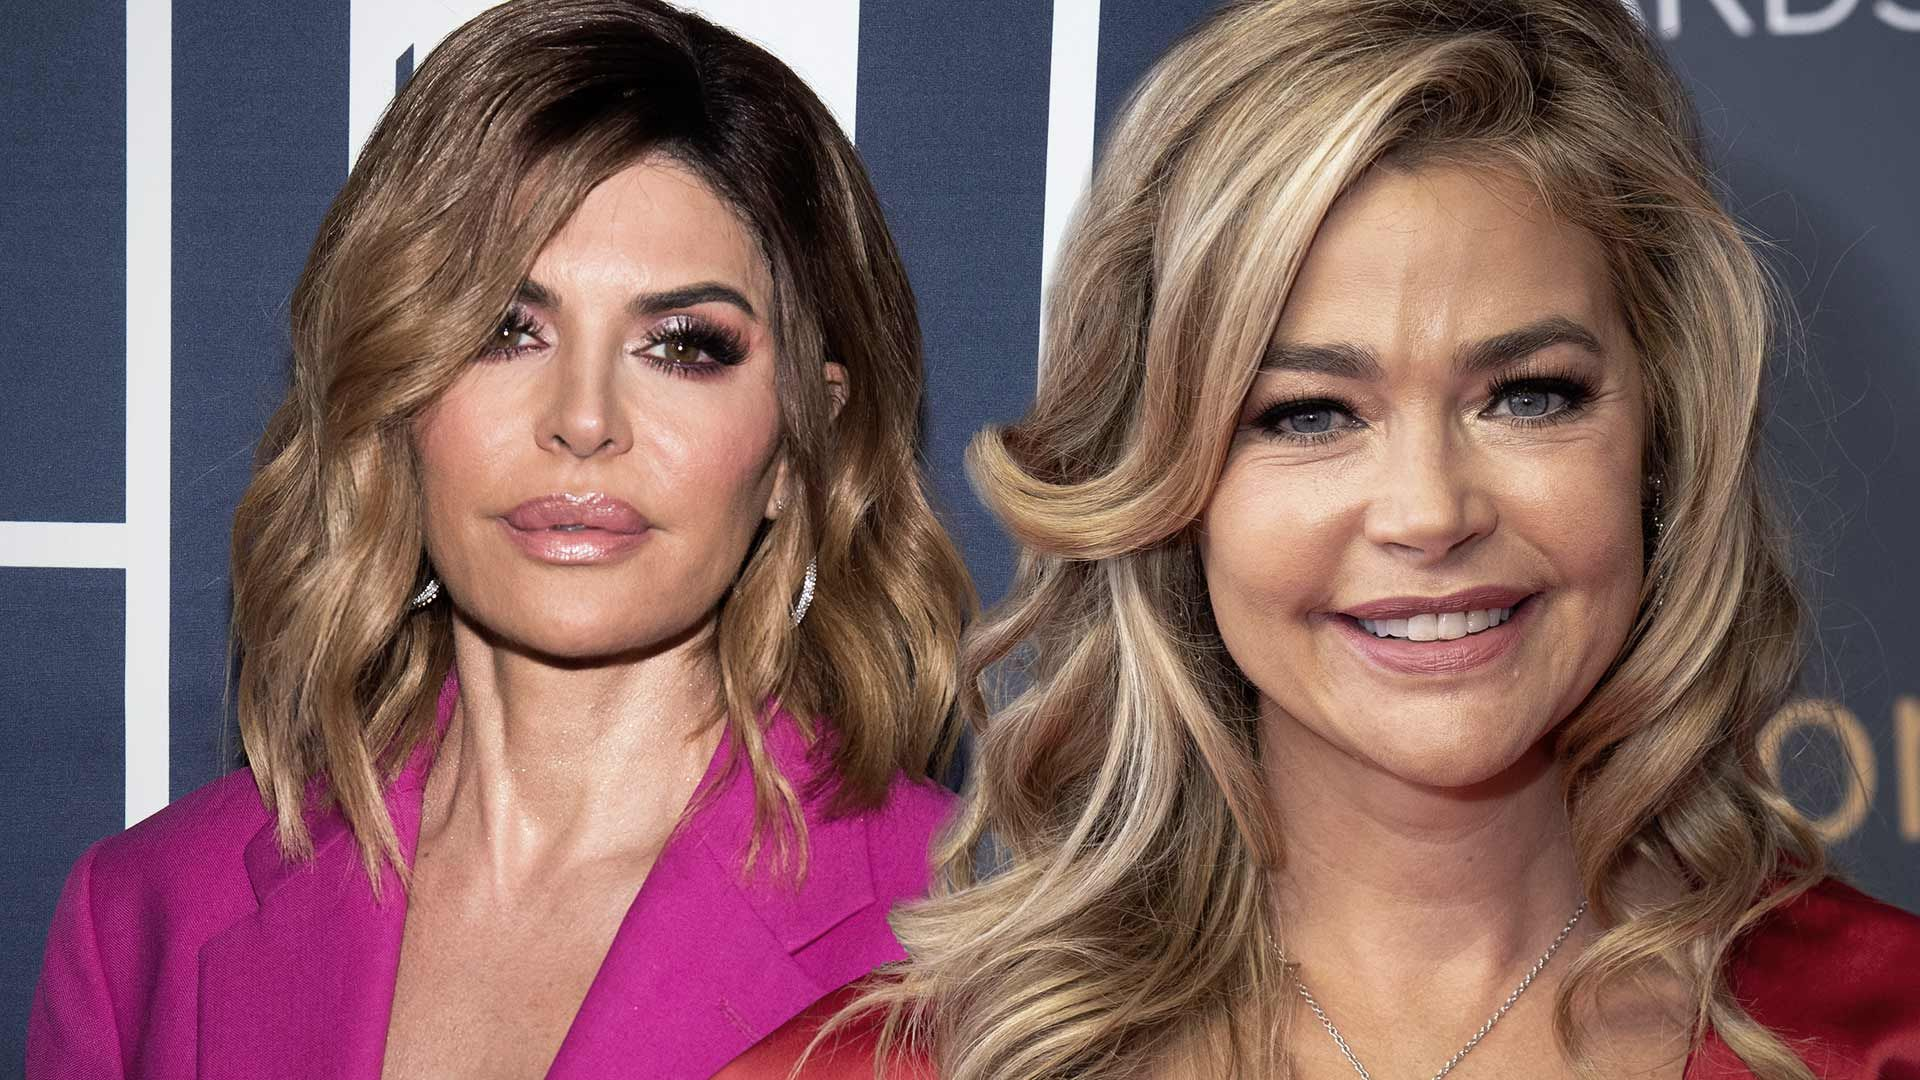 RHOBH: Lisa Rinna publicly calls out Denise Richards for skipping filming